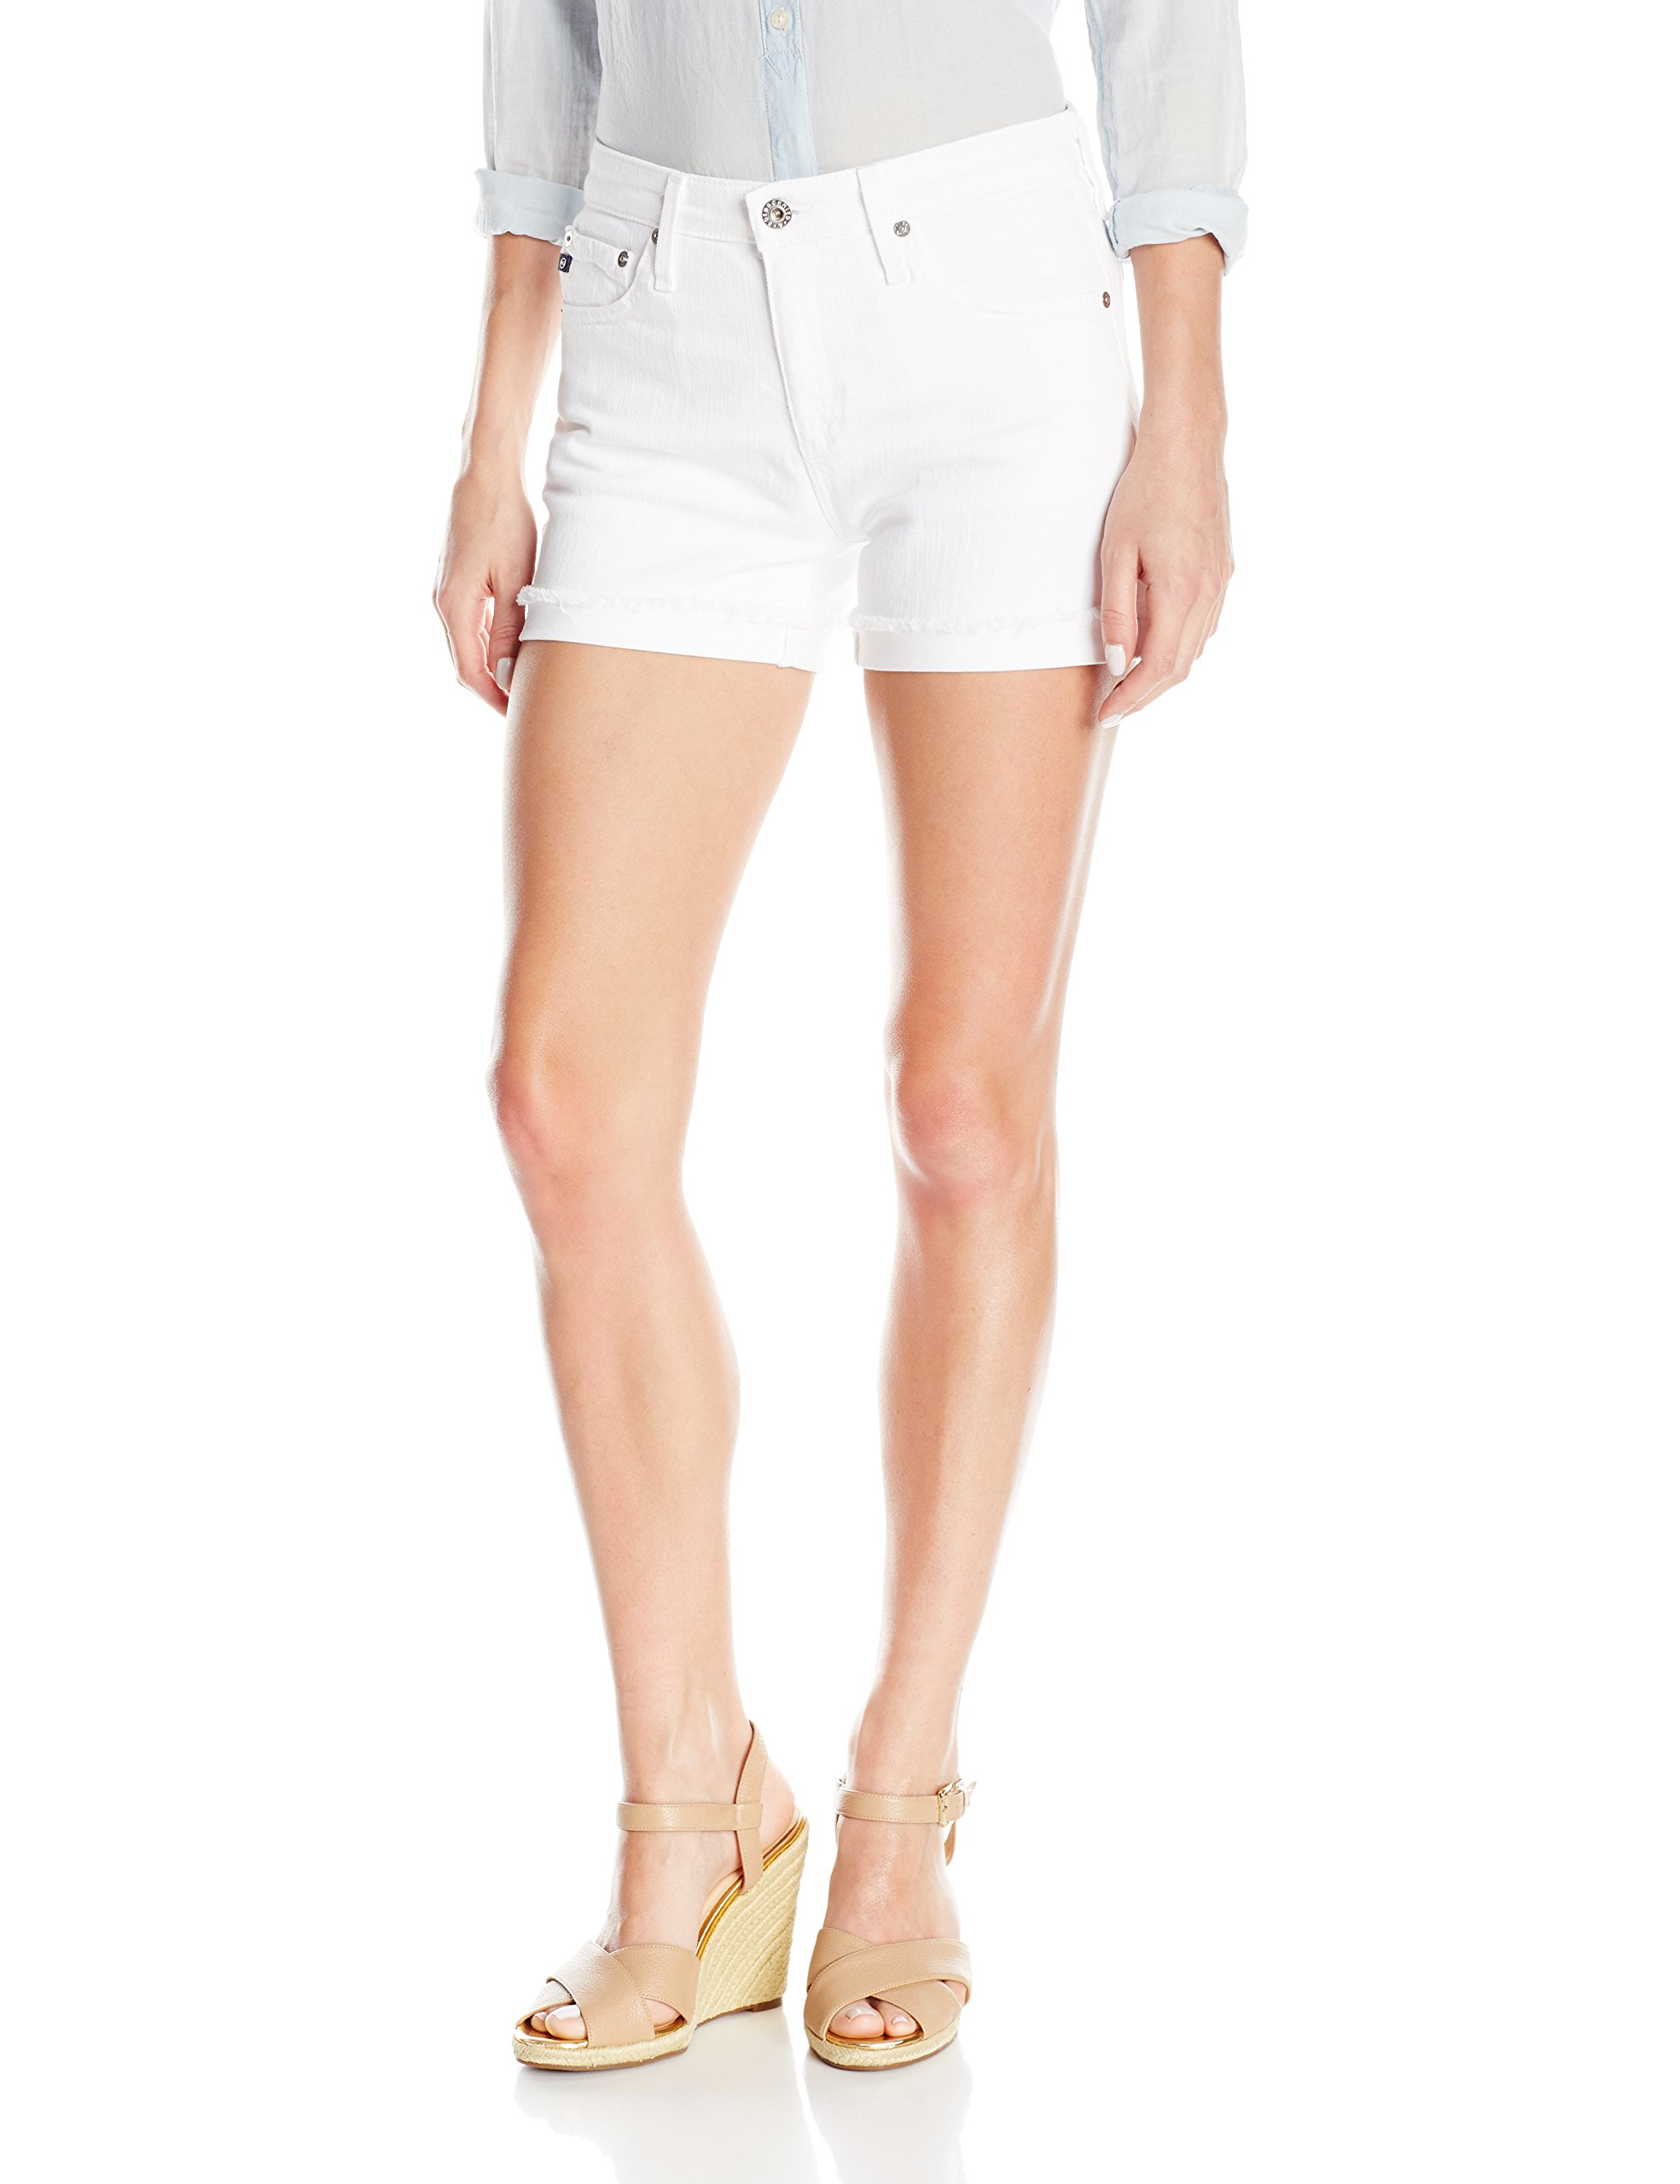 AG Adriano Goldschmied Women's Hailey Ex-Boyfriend Roll up Jean Short, White, 28